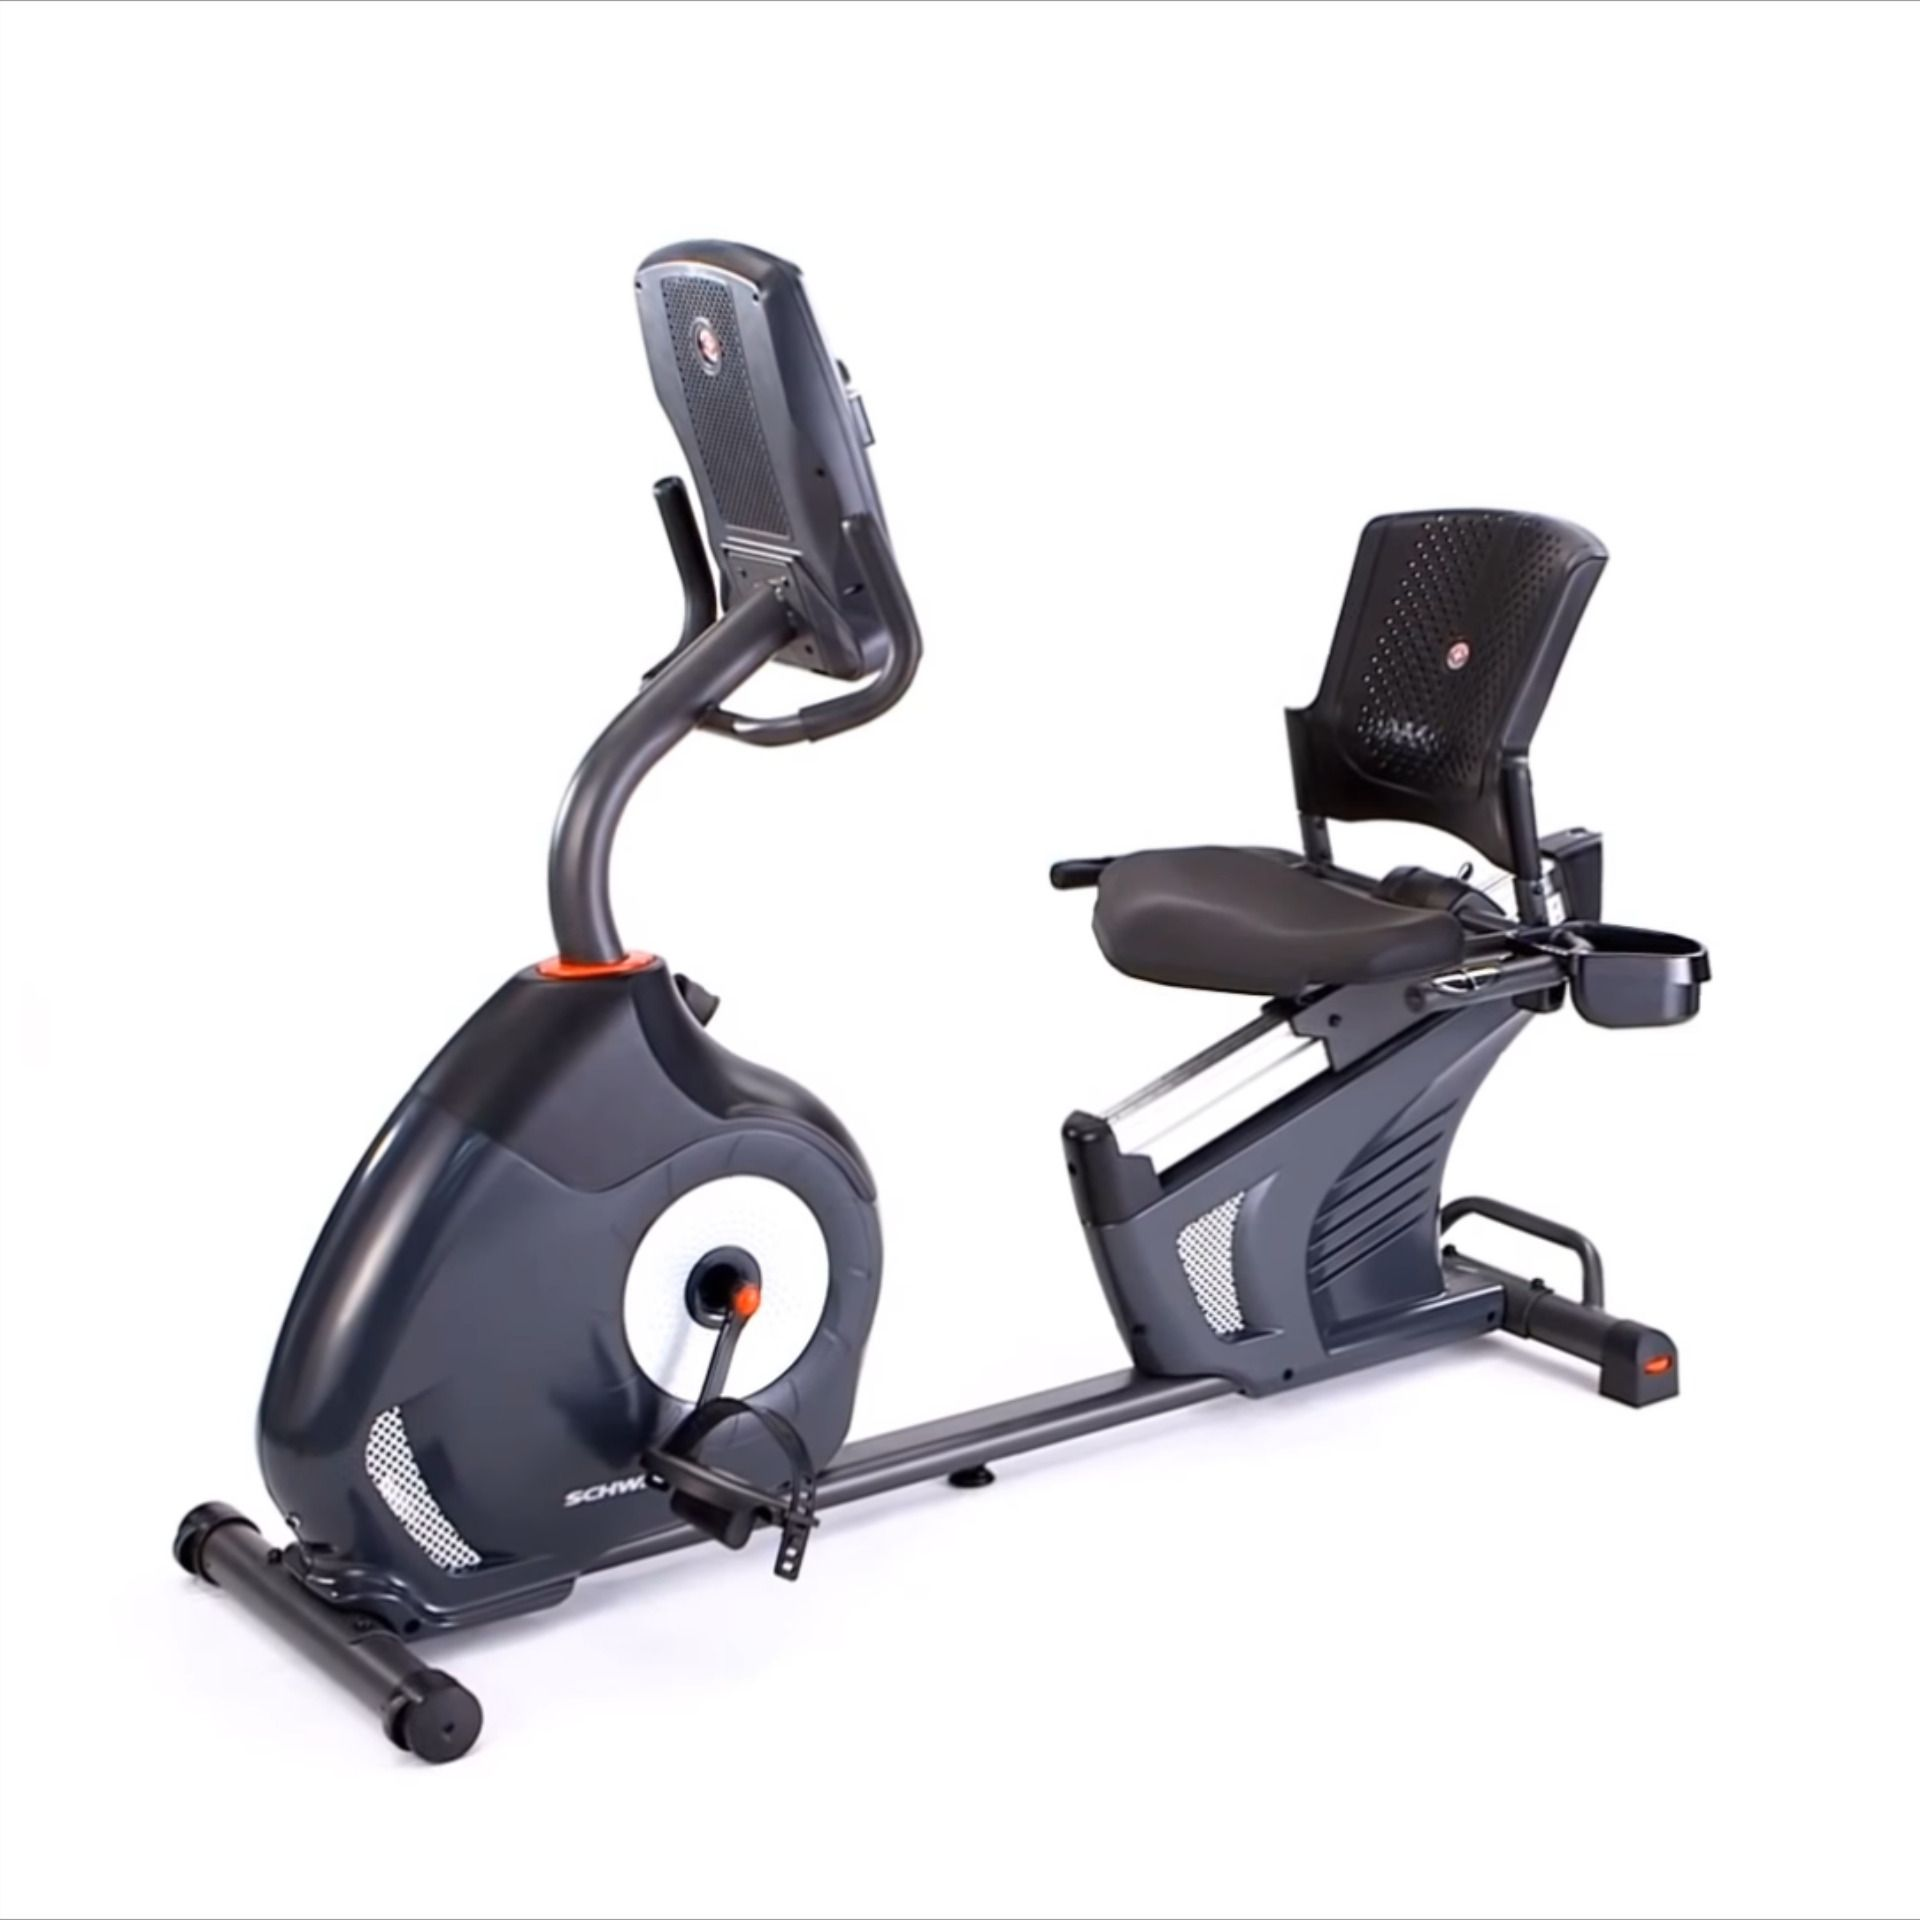 Recumbent Bicycle Walmart Recumbent Bicycle Recumbent Bike Workout Exercise Bikes